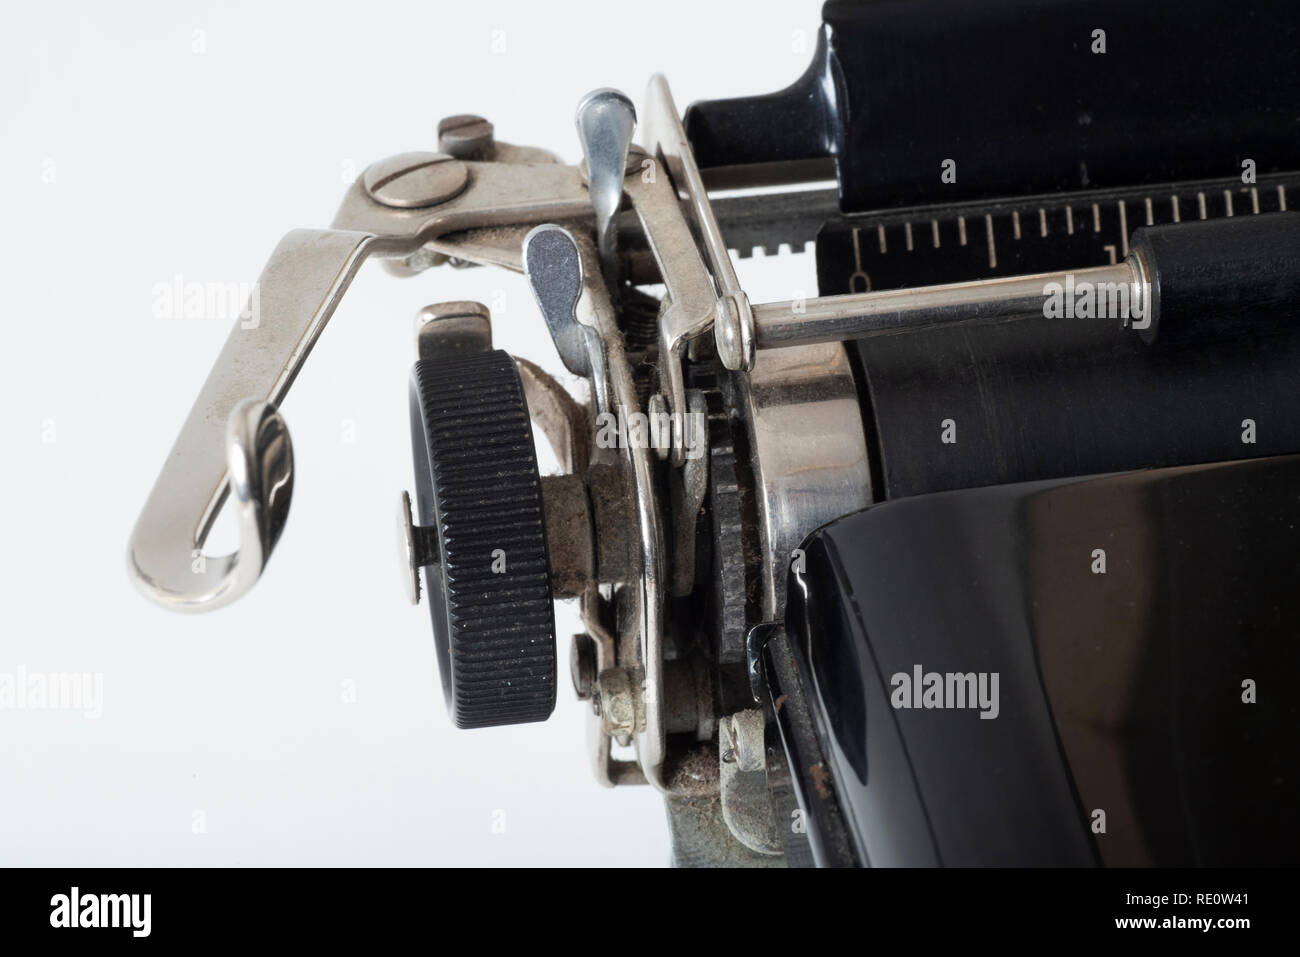 Close up of the return carriage and rotation knob on a 1950s-era Royal typewriter. - Stock Image